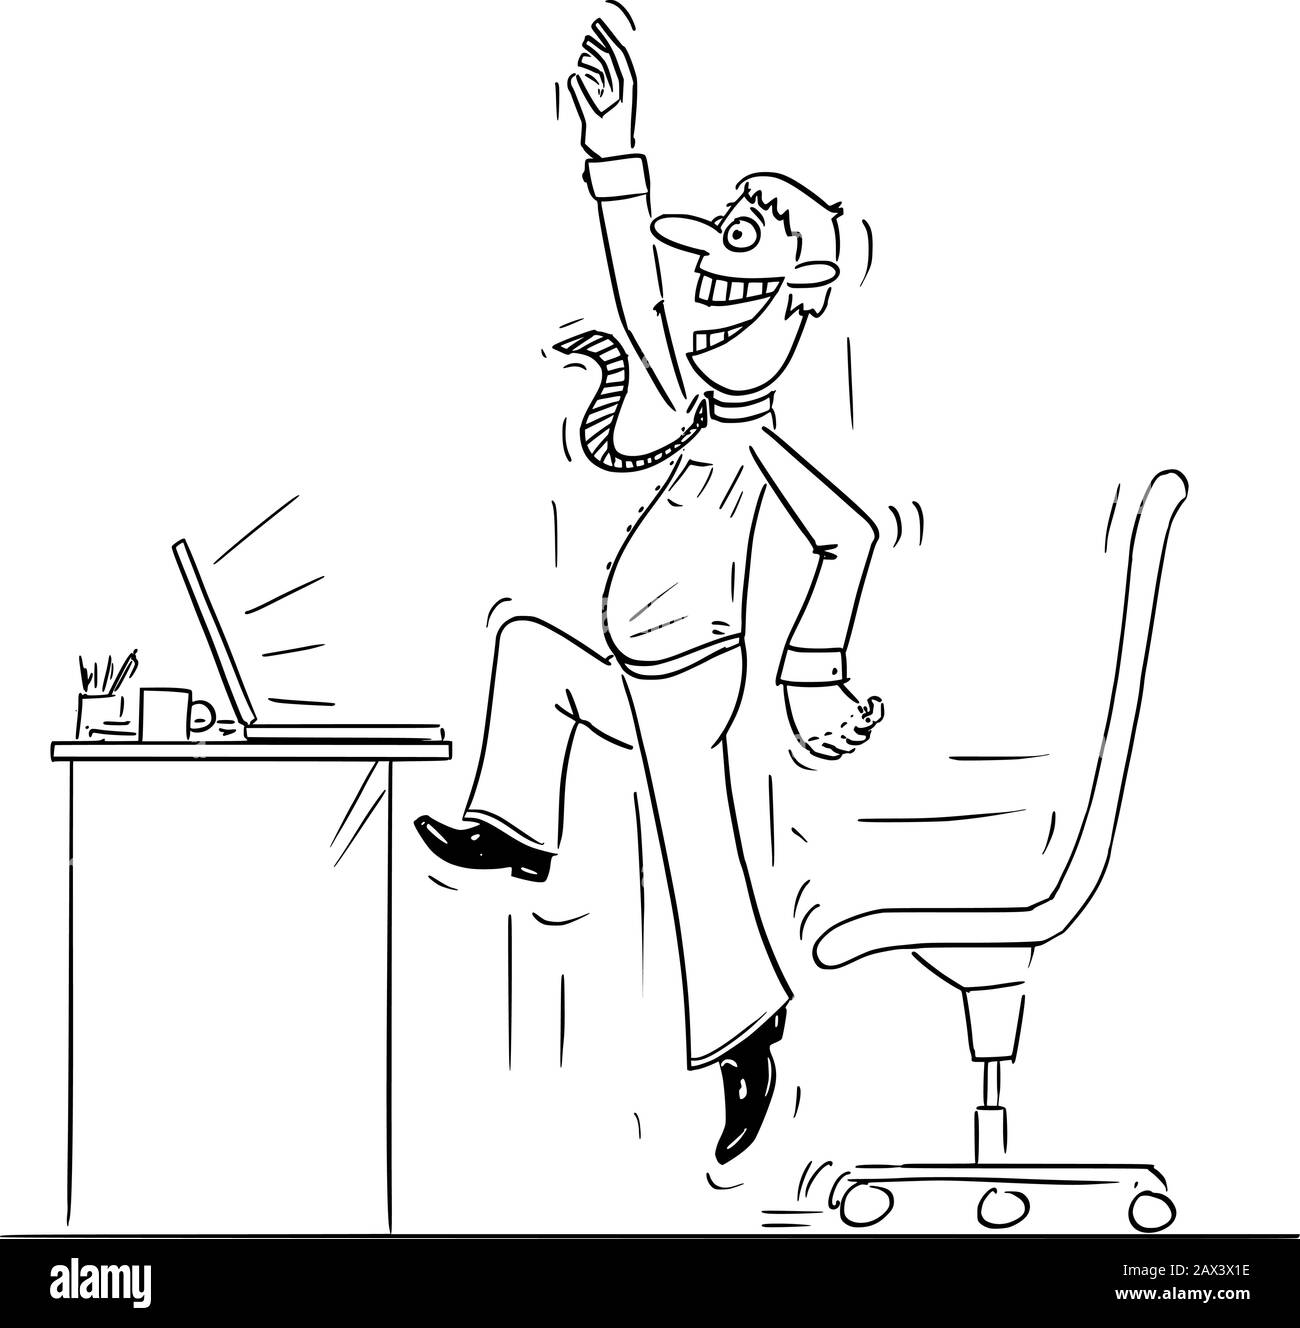 vector funny comic cartoon drawing of businessman office worker or man working on computer and jumping and celebrating success stock vector image art alamy https www alamy com vector funny comic cartoon drawing of businessmanoffice worker or man working on computer and jumping and celebrating success image343064330 html